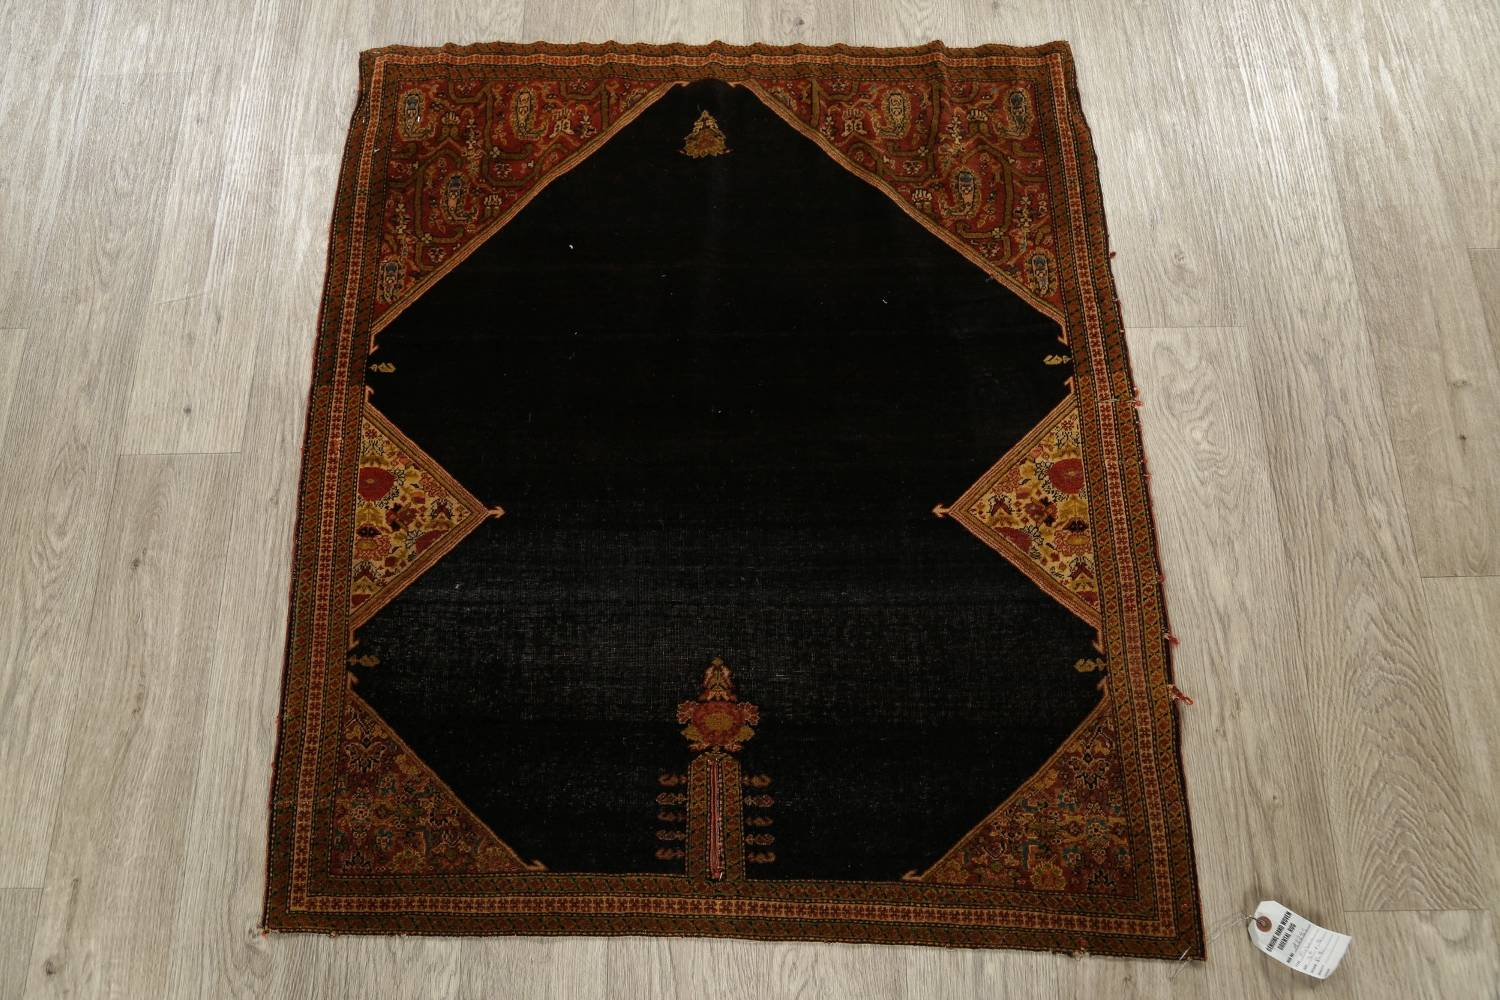 Pre-1900 Vegetable Dye Sarouk Farahan Persian Hand-Knotted 3x3 Square Rug image 2